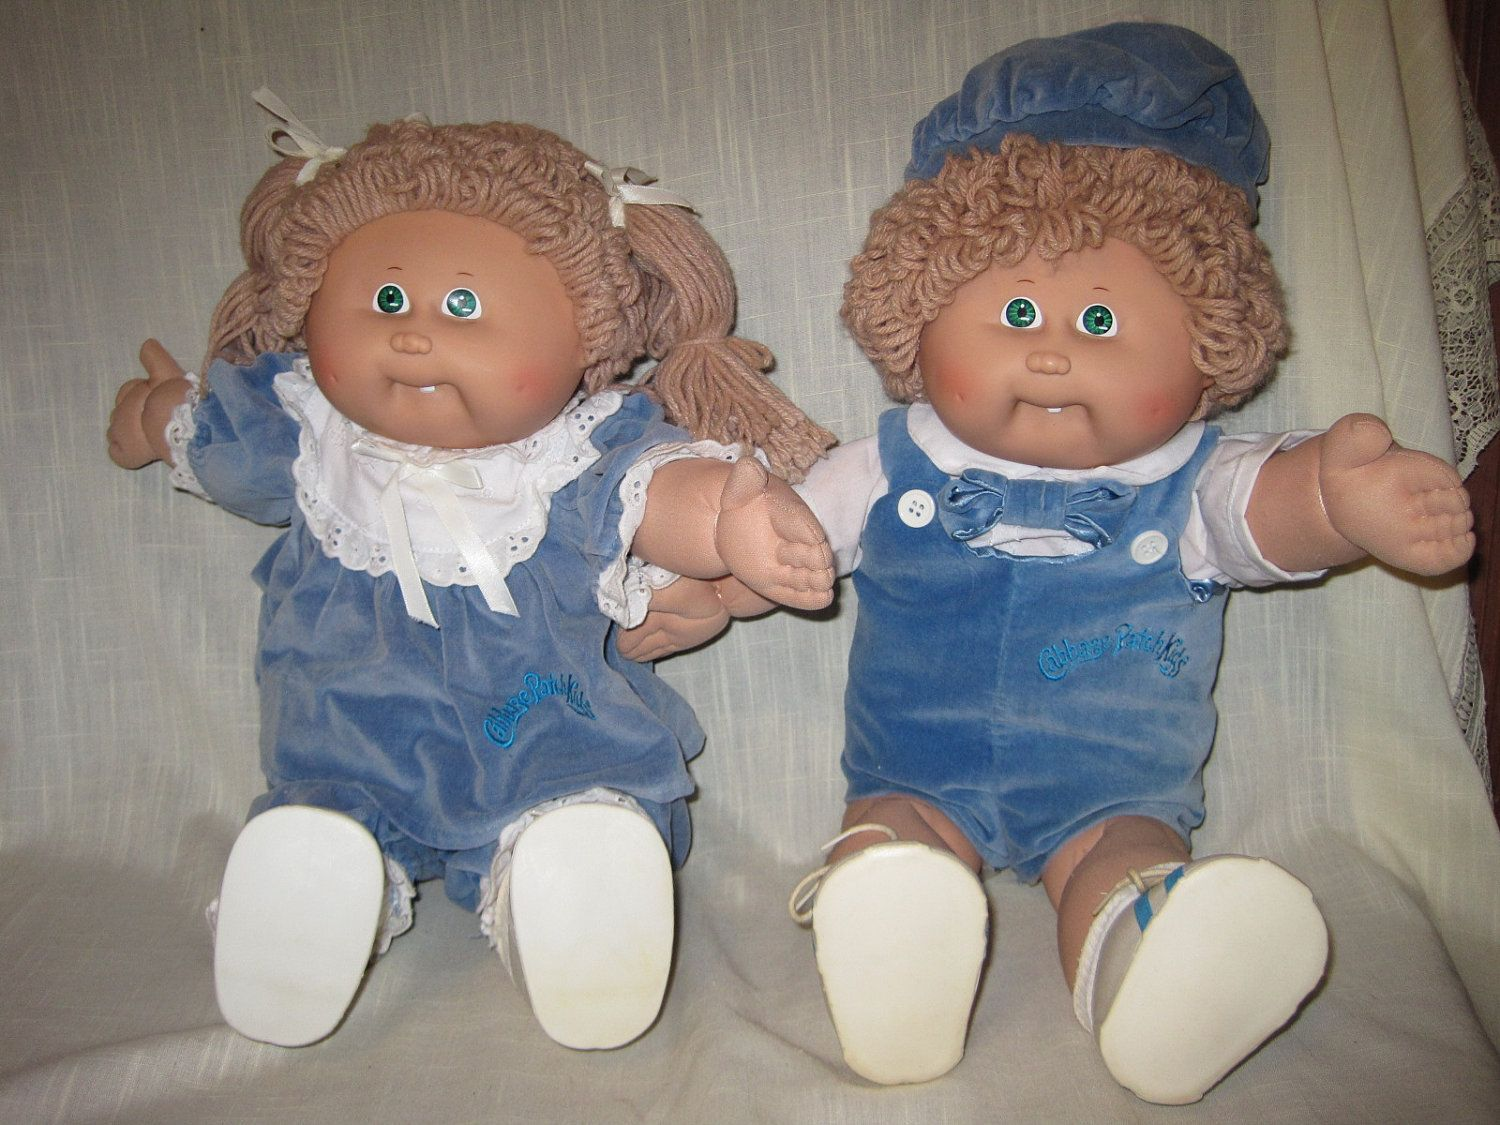 1980s Cabbage Patch Dolls Vintage 1980s Coleco Cabbage Patch Twins One Boy Doll One Girl Doll Cabbage Patch Dolls Cabbage Patch Boy Doll